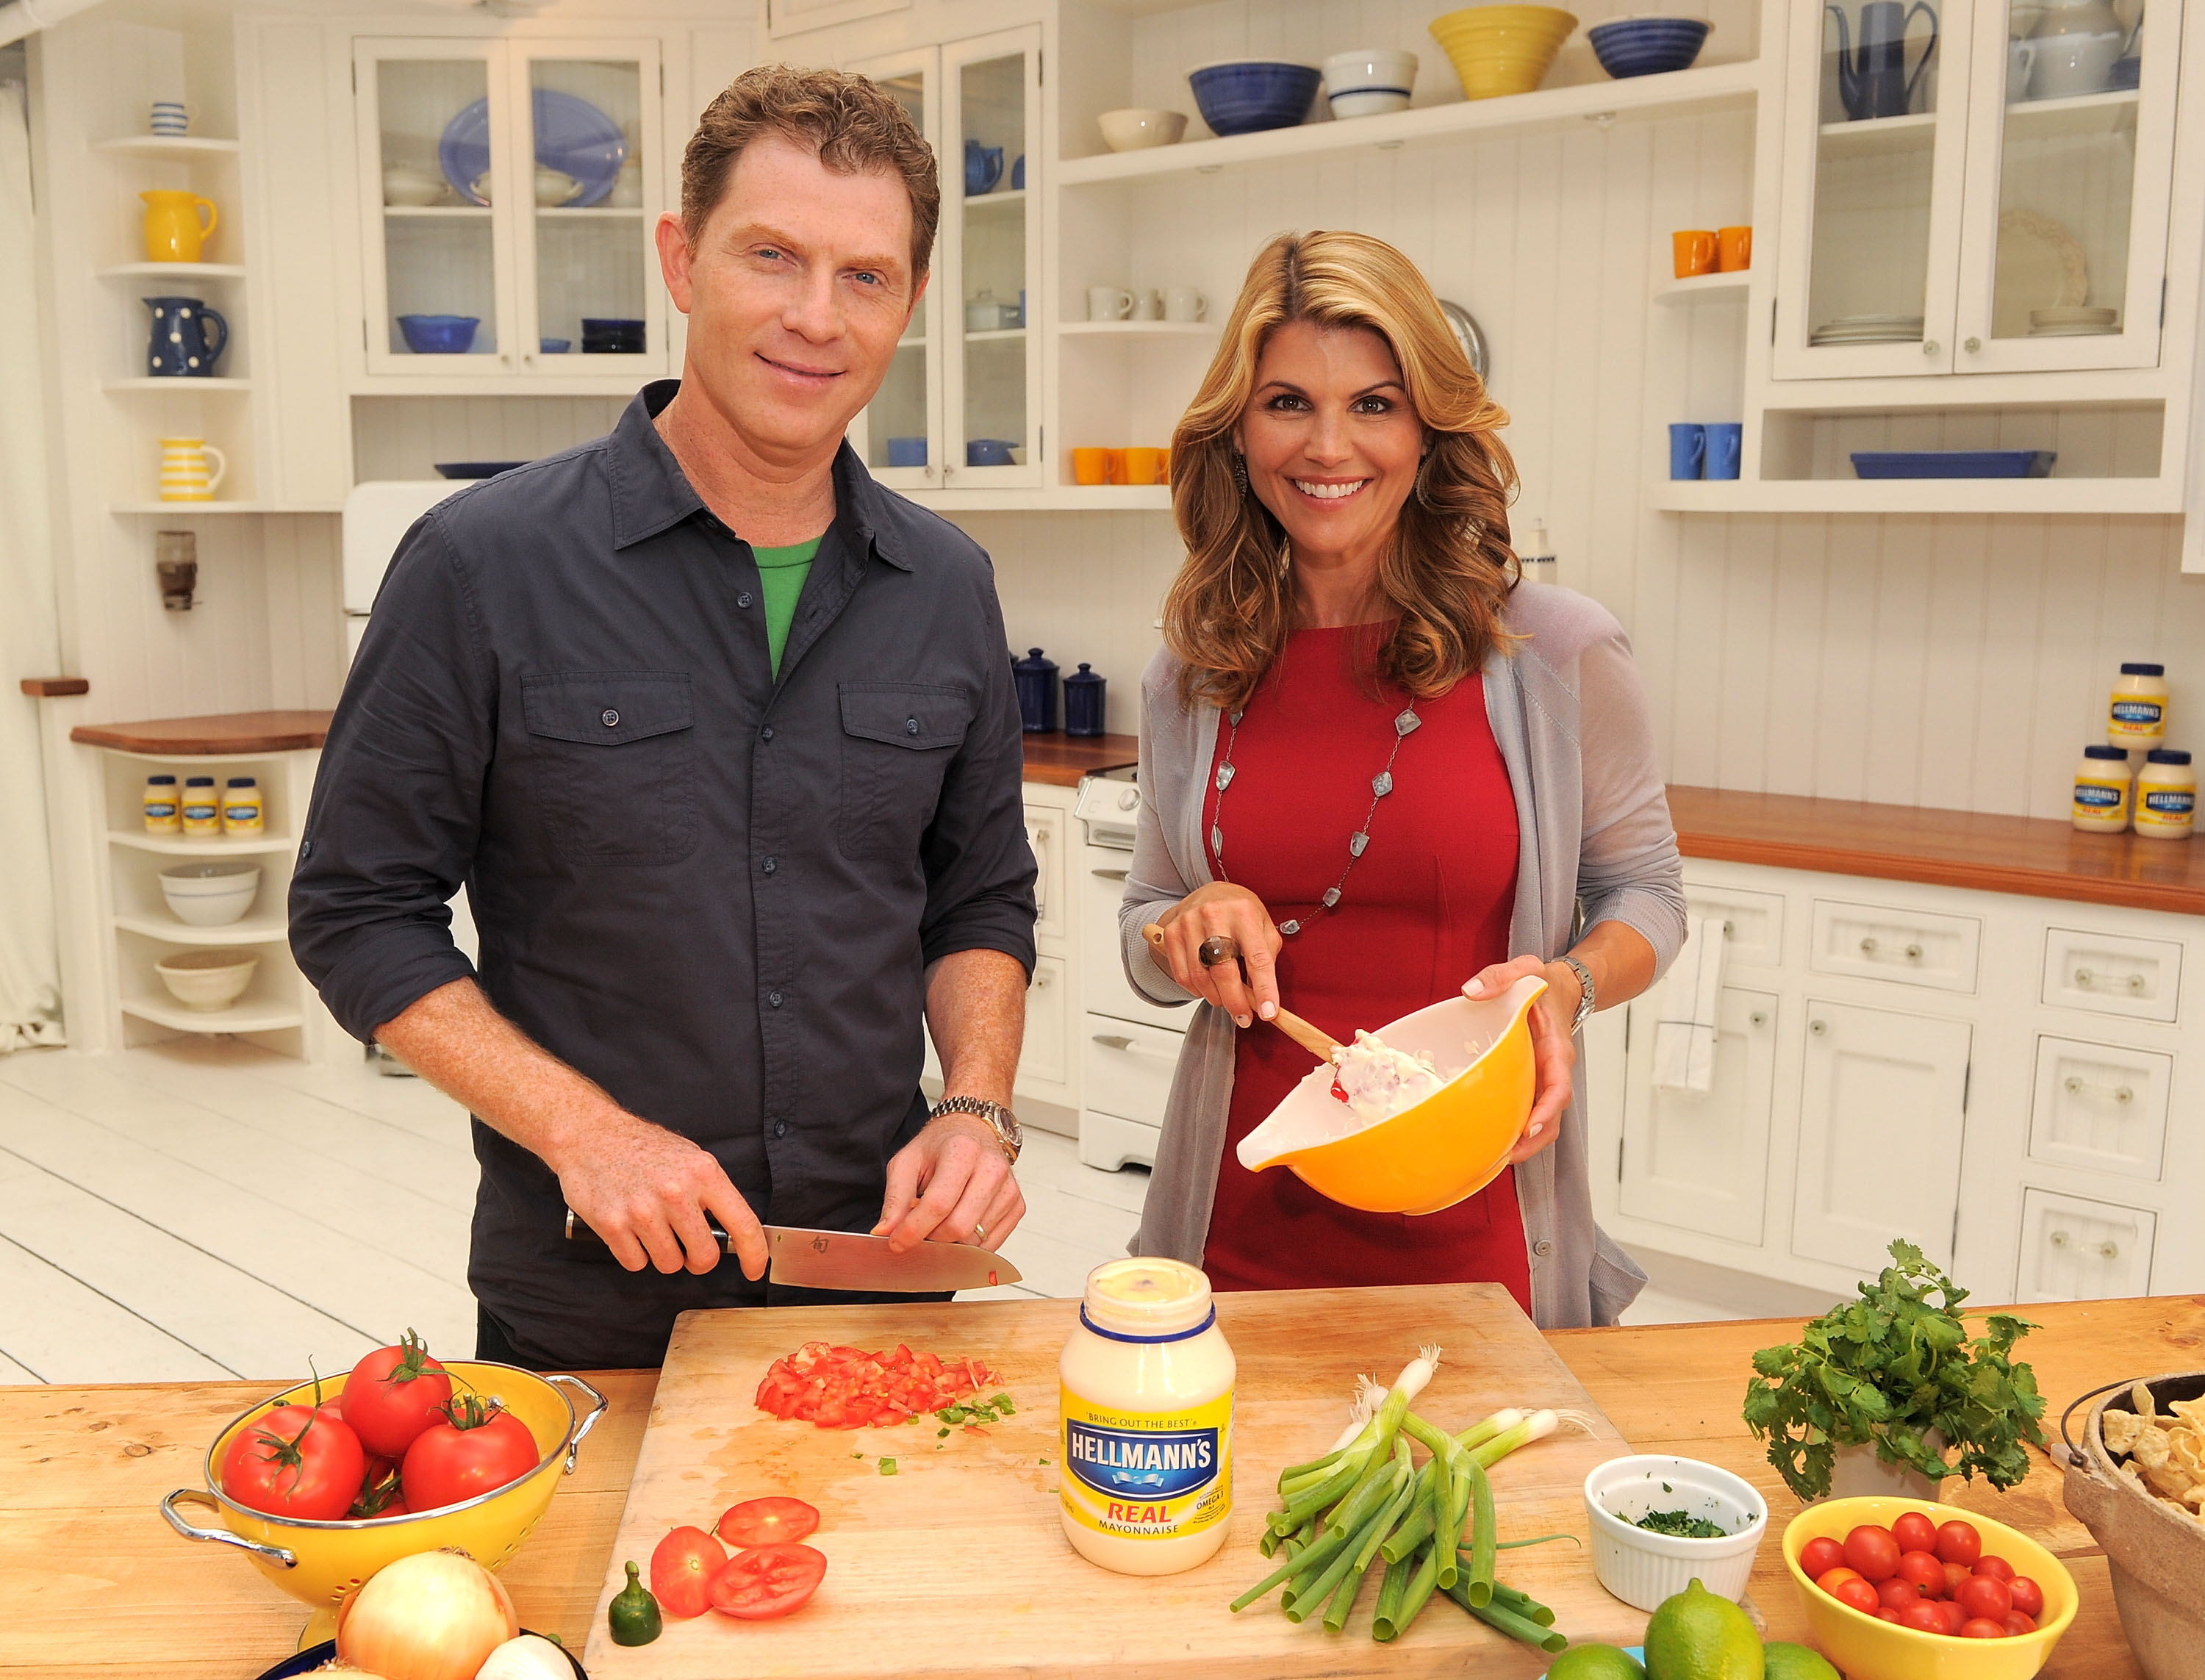 Me bobby flay and marcella valladolid eat and get drunk well m4hsunfo